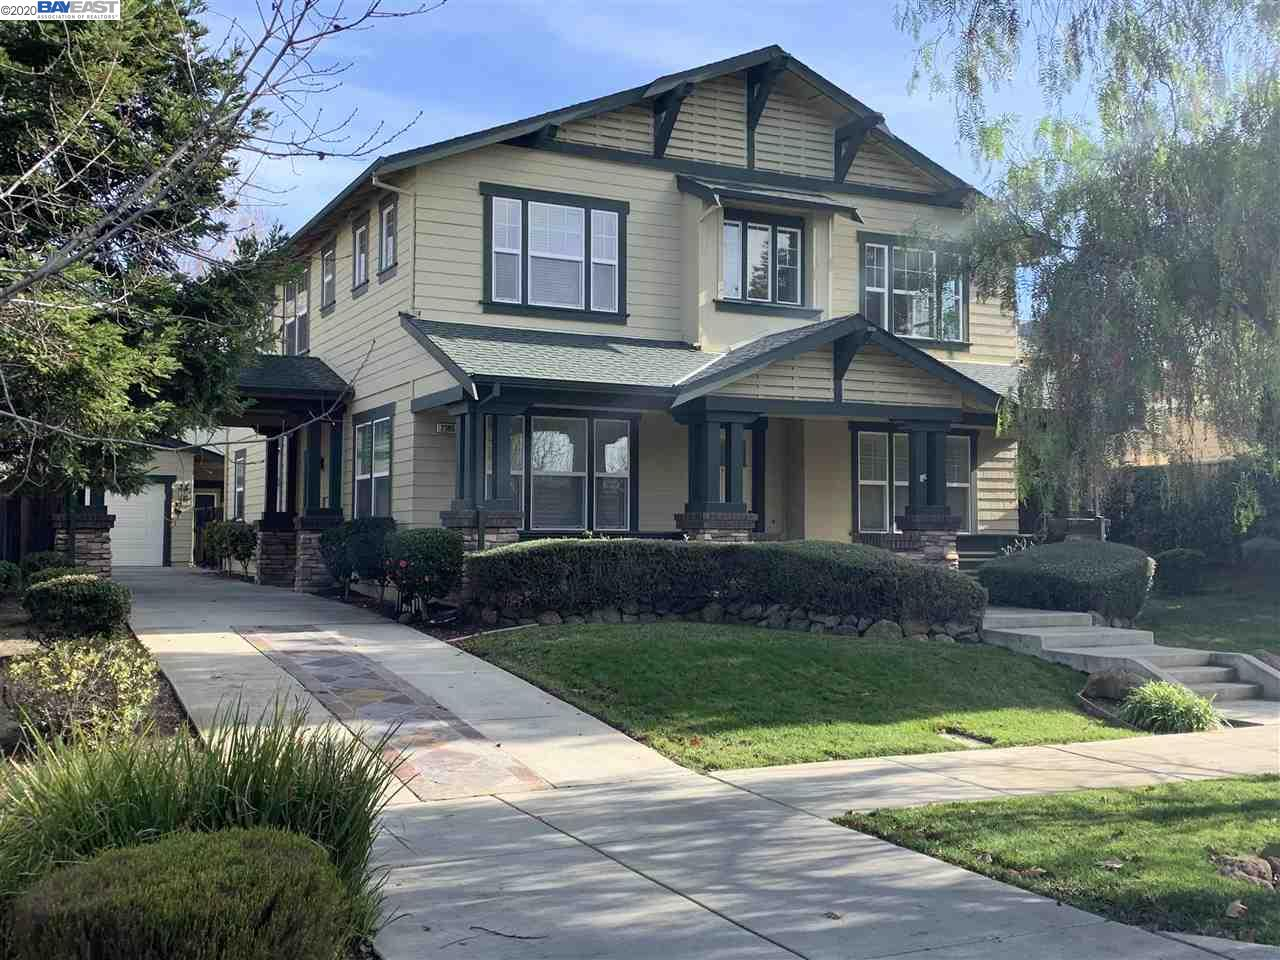 Photo of 2386 Treadwell St, LIVERMORE, CA 94550